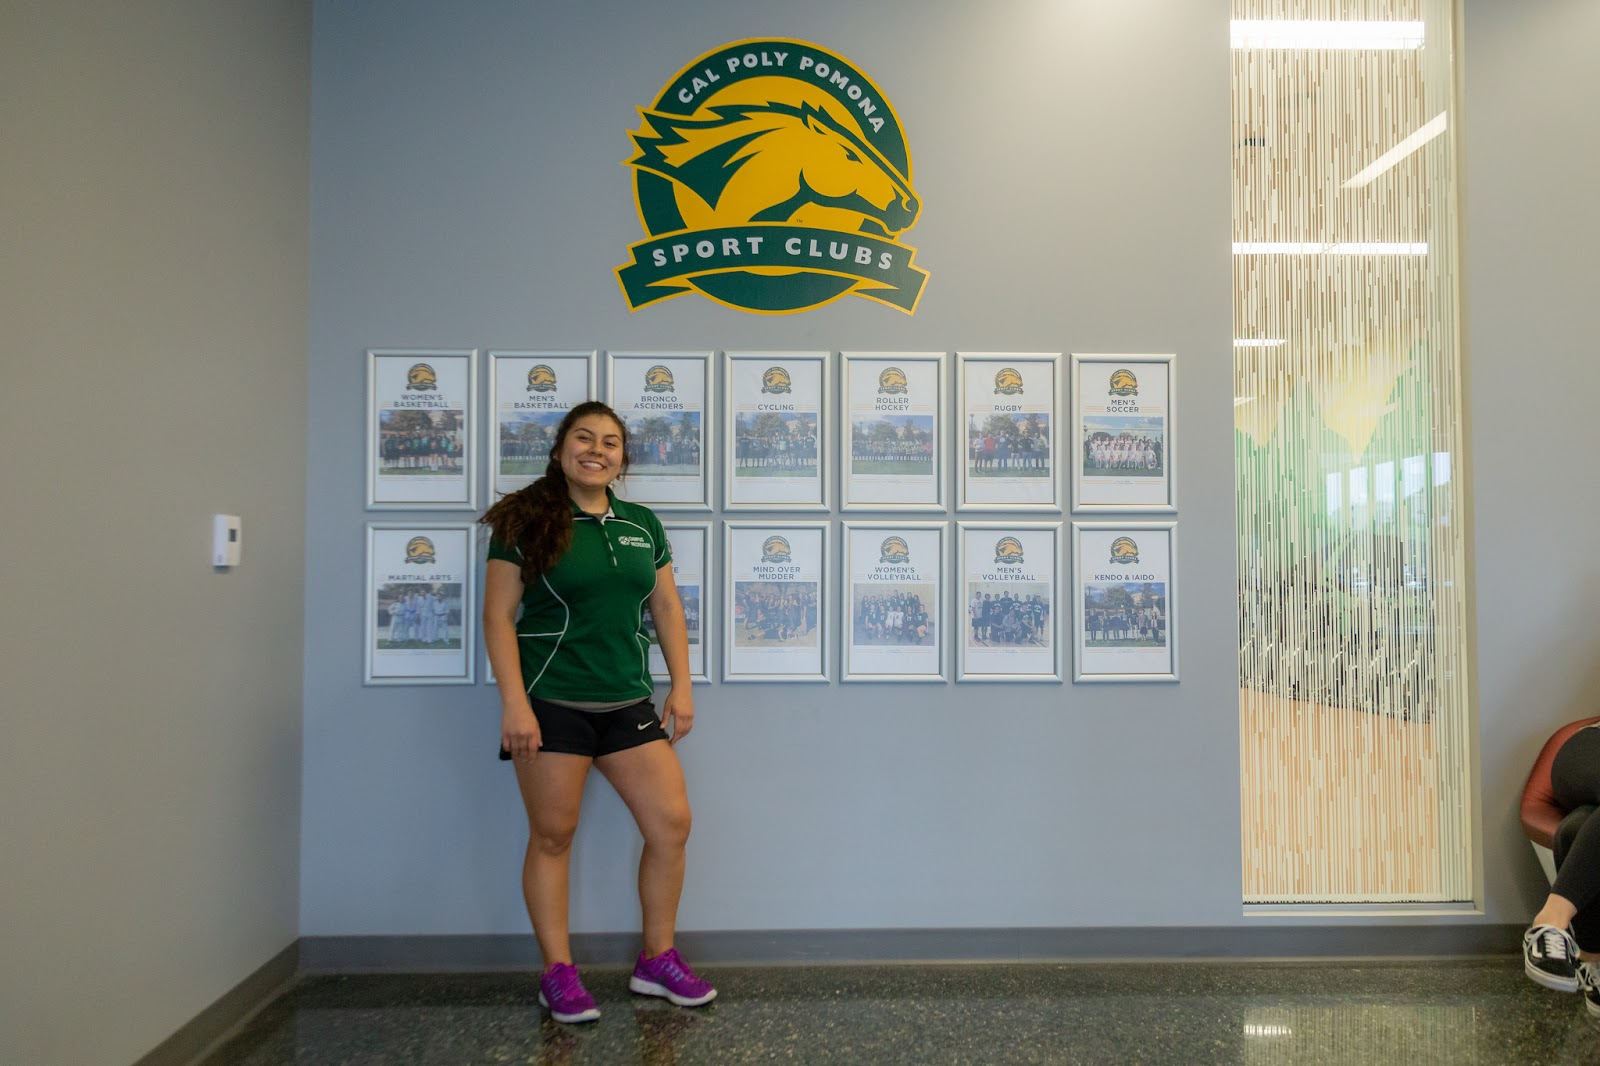 Arellano Rodriguez posing proudly in front of the Sport Clubs wall with club photos